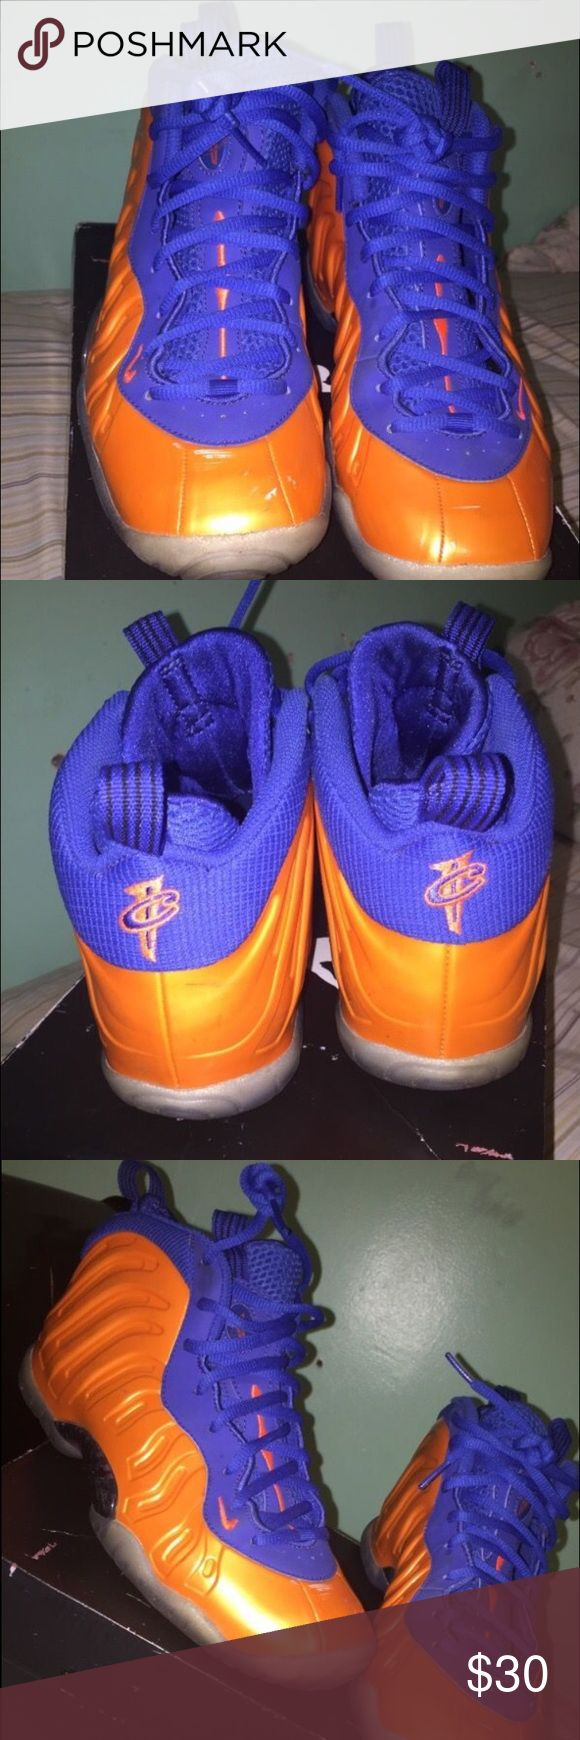 New York Knicks Foamposites Orange & Blue foamposites, size 7y, there are a few scuffs (picture shown) and the bottoms aren't icy, but still like new and great shoes. Comes with OG box. Nike Shoes Sneakers